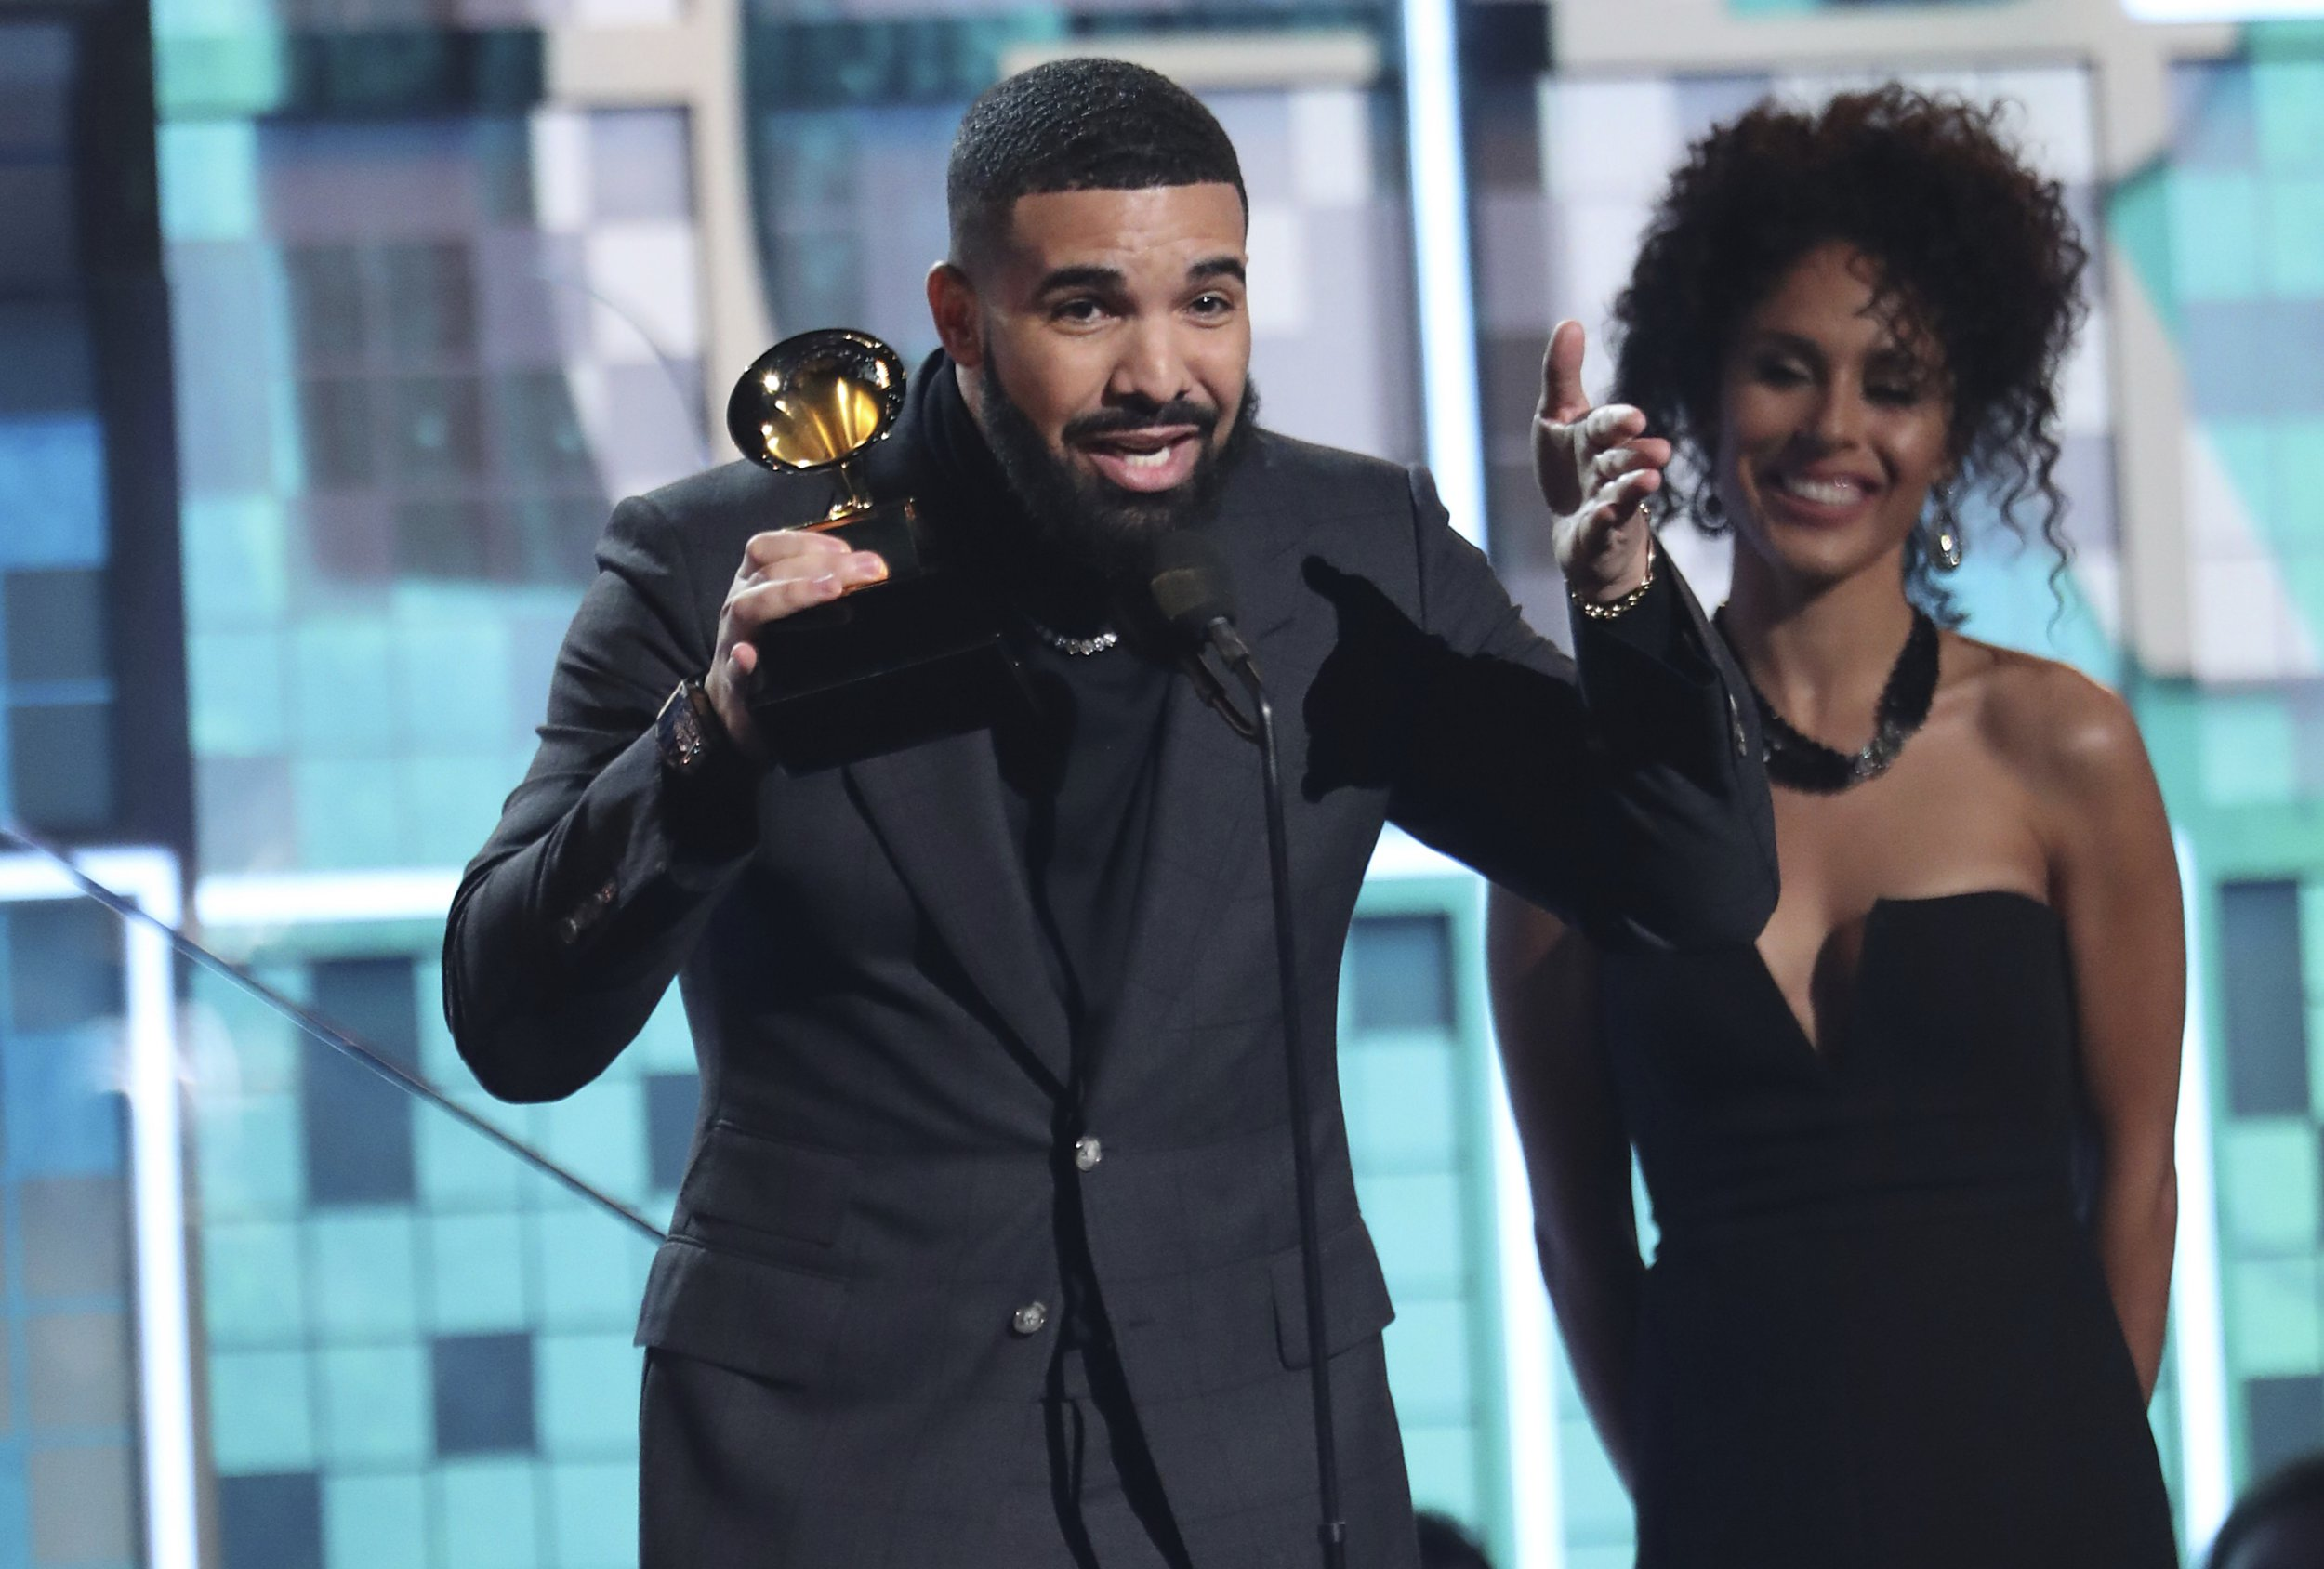 Drake's mic cut off during his Grammys acceptance speech as he critiques awards ceremonies